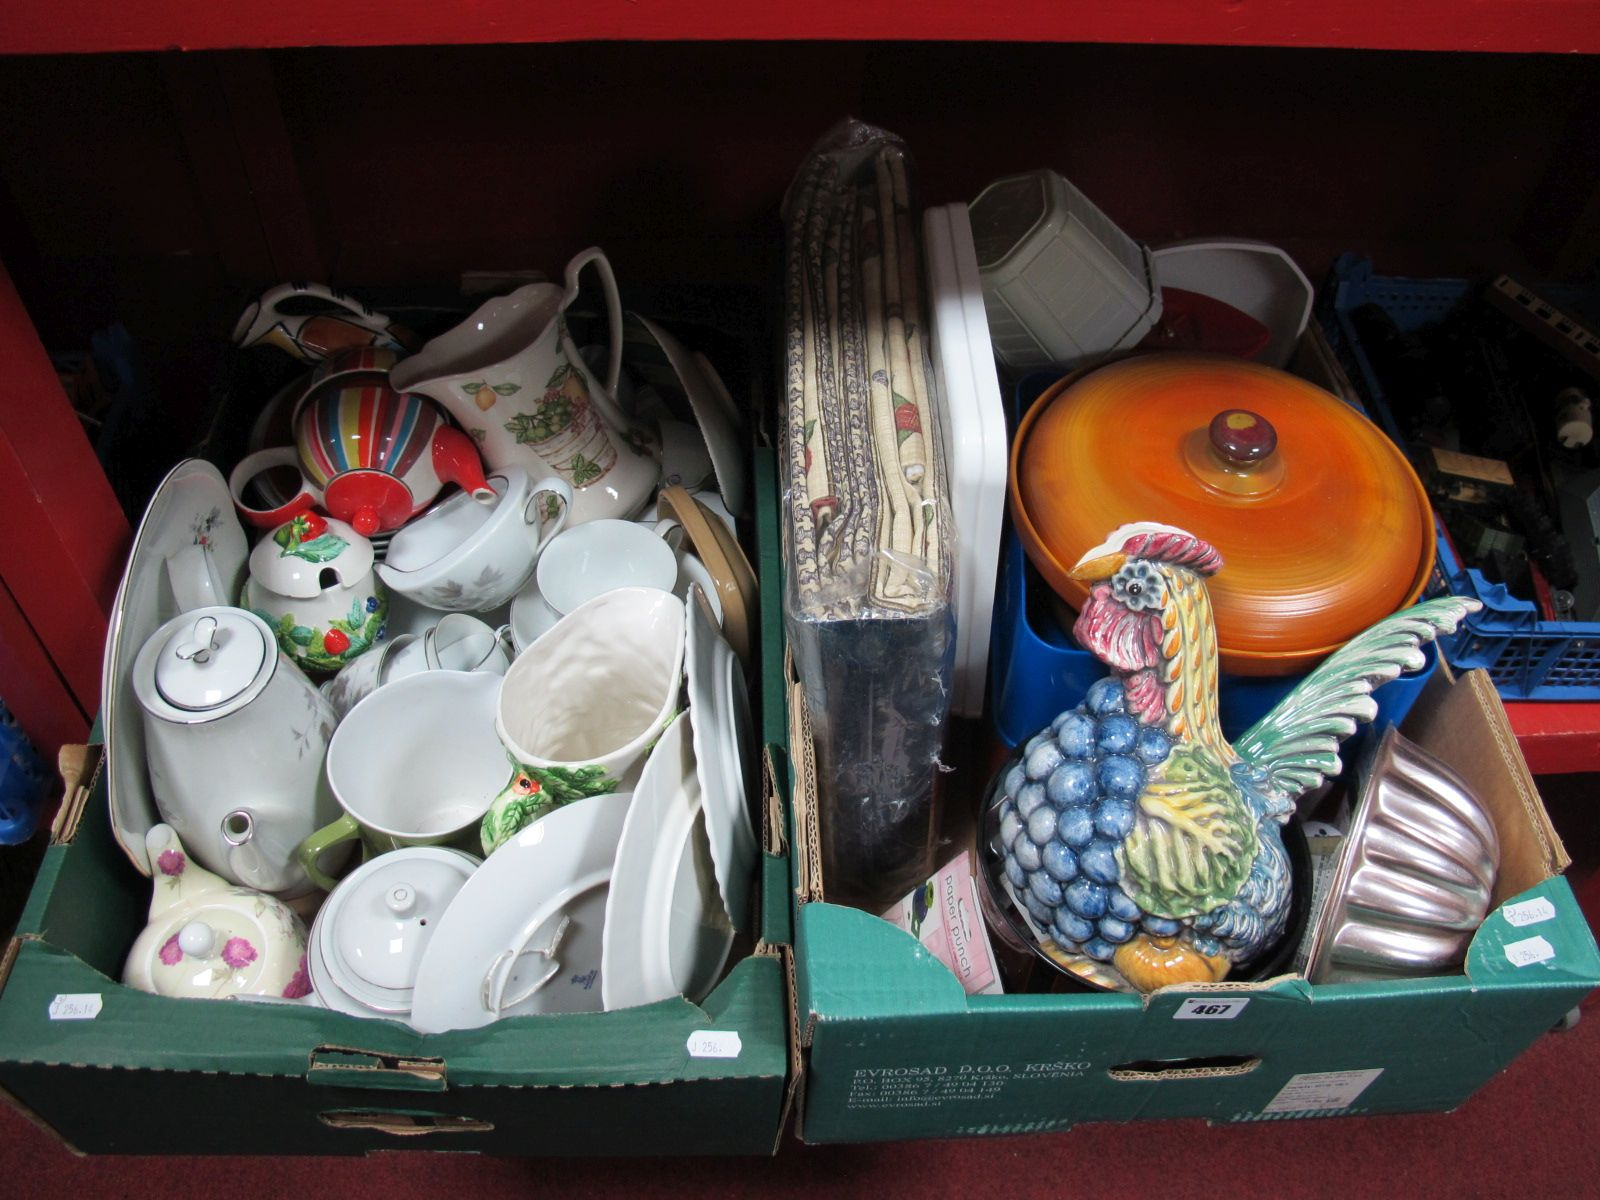 Lot 467 - A Noritake China Part Tea Service, kitchen scales, pair of lined curtains, etc:- Two Boxes